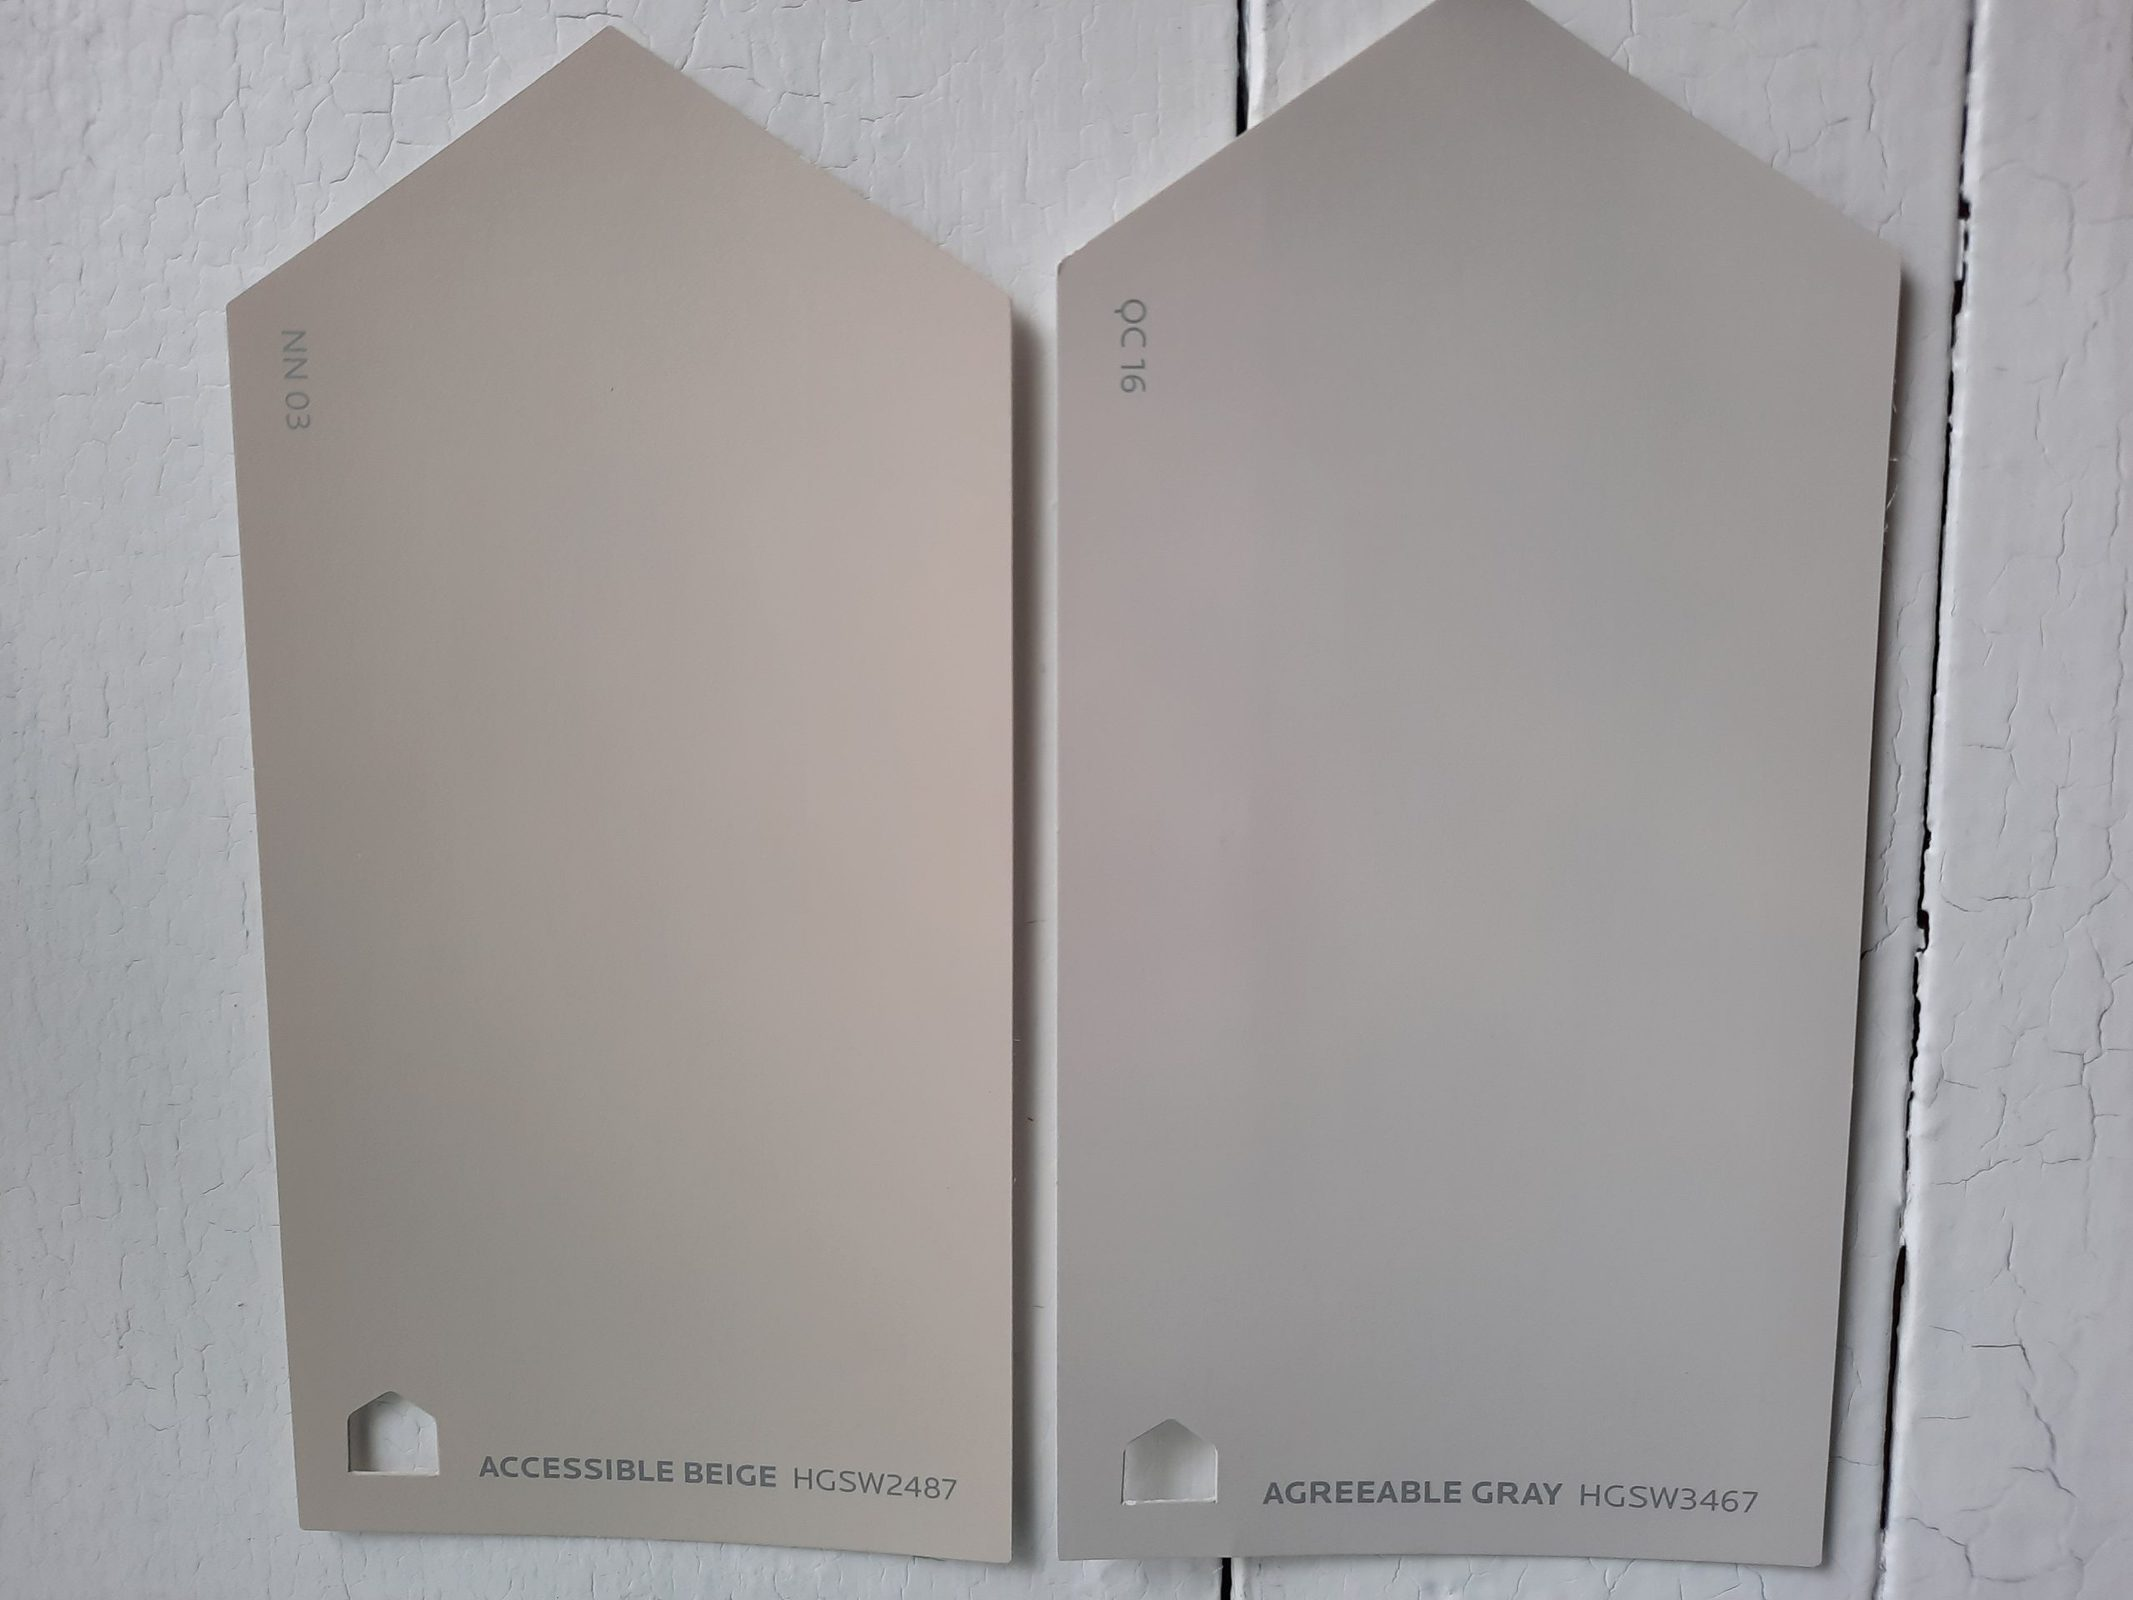 5 Accessible Beige vs Agreeable Gray scaled